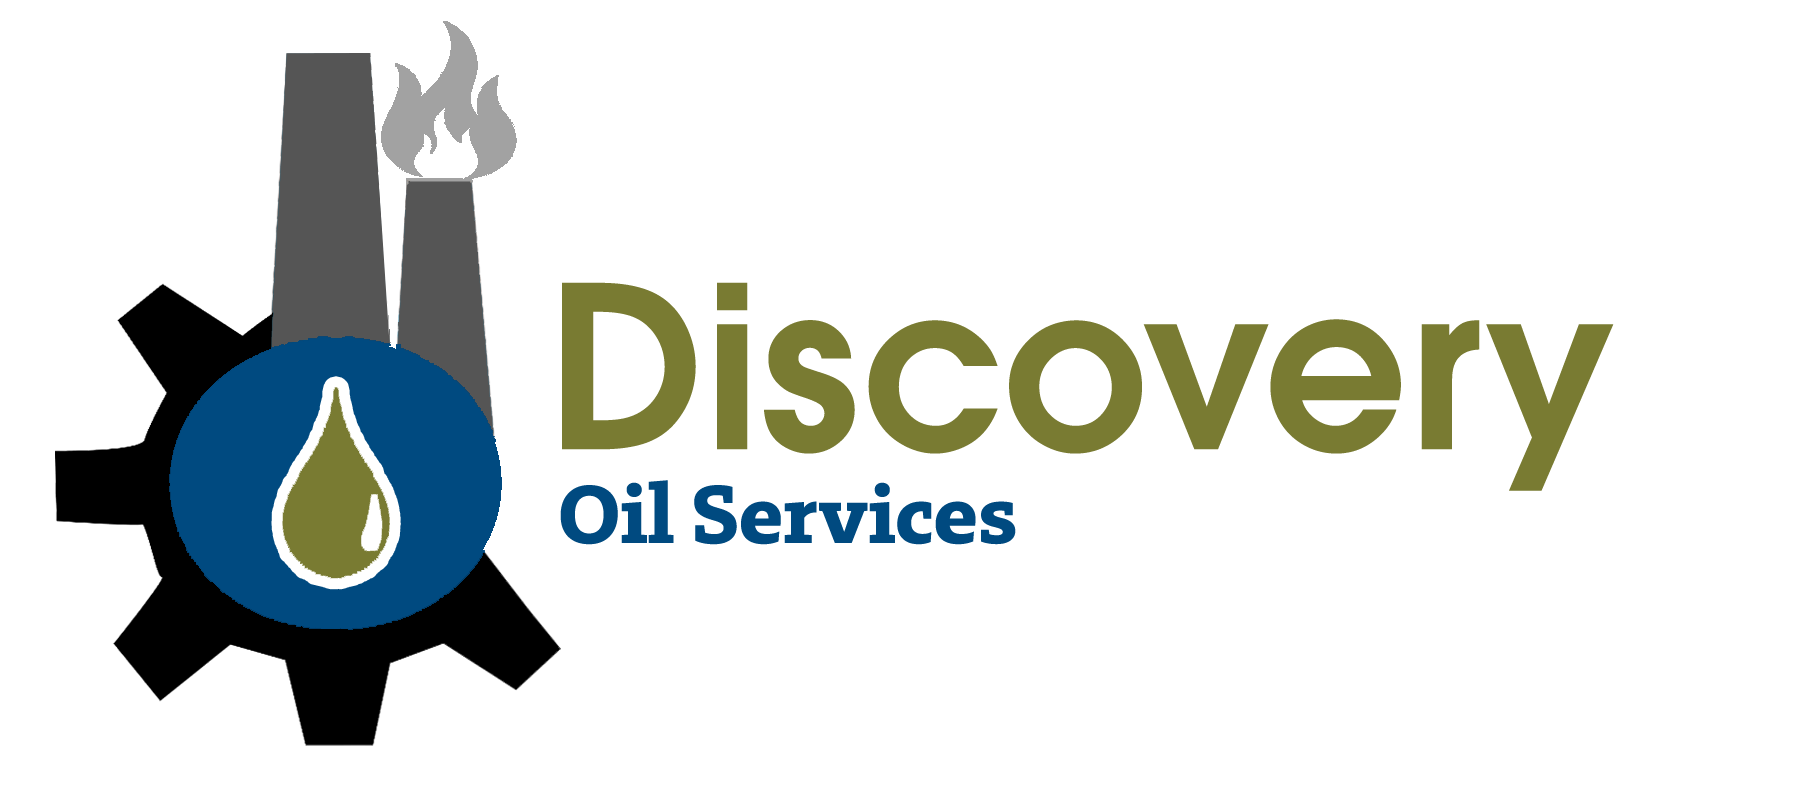 Descovery Oil Services